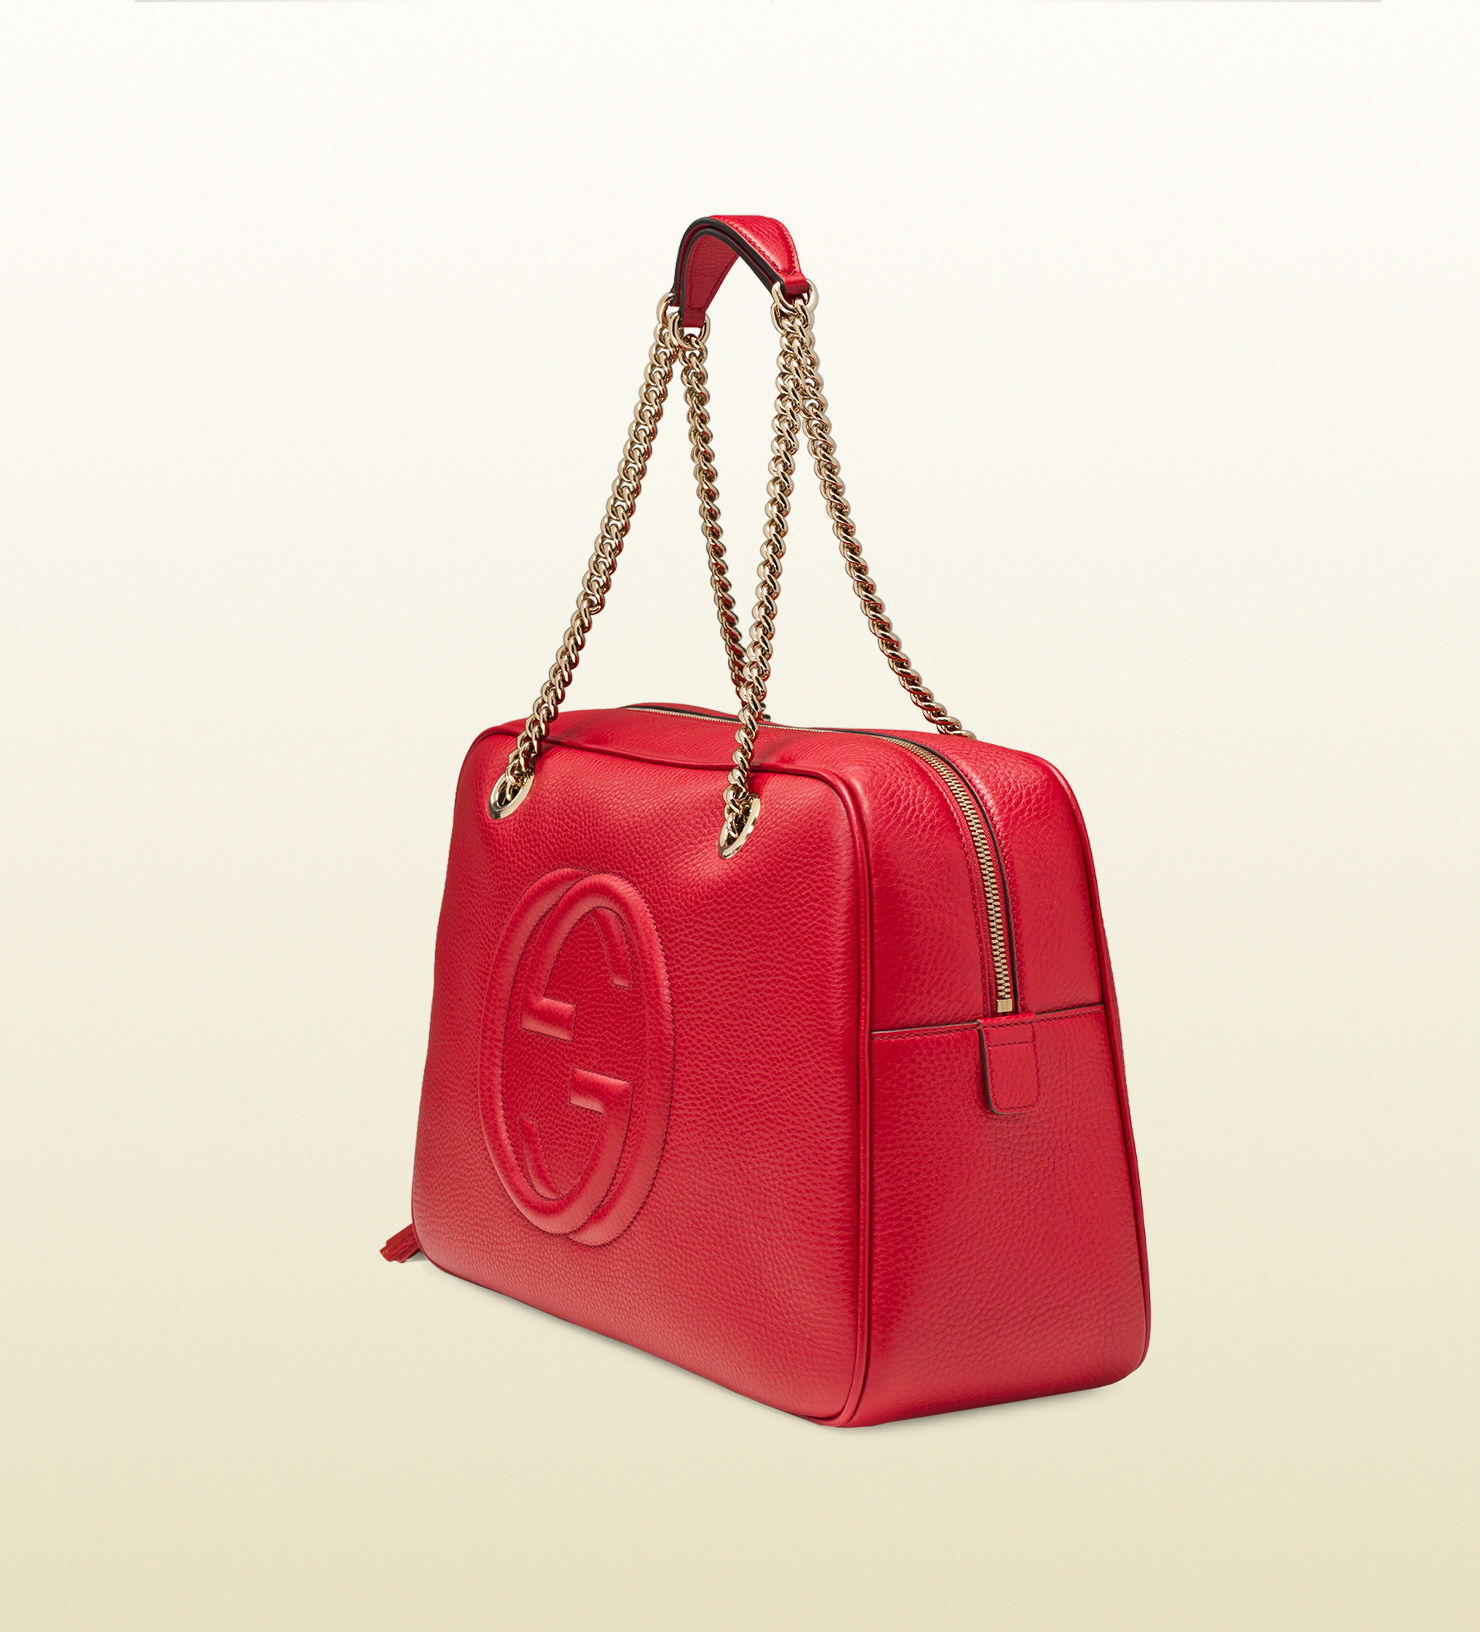 e7be64cc22862 Lyst - Gucci Soho Leather Chain Shoulder Bag in Red